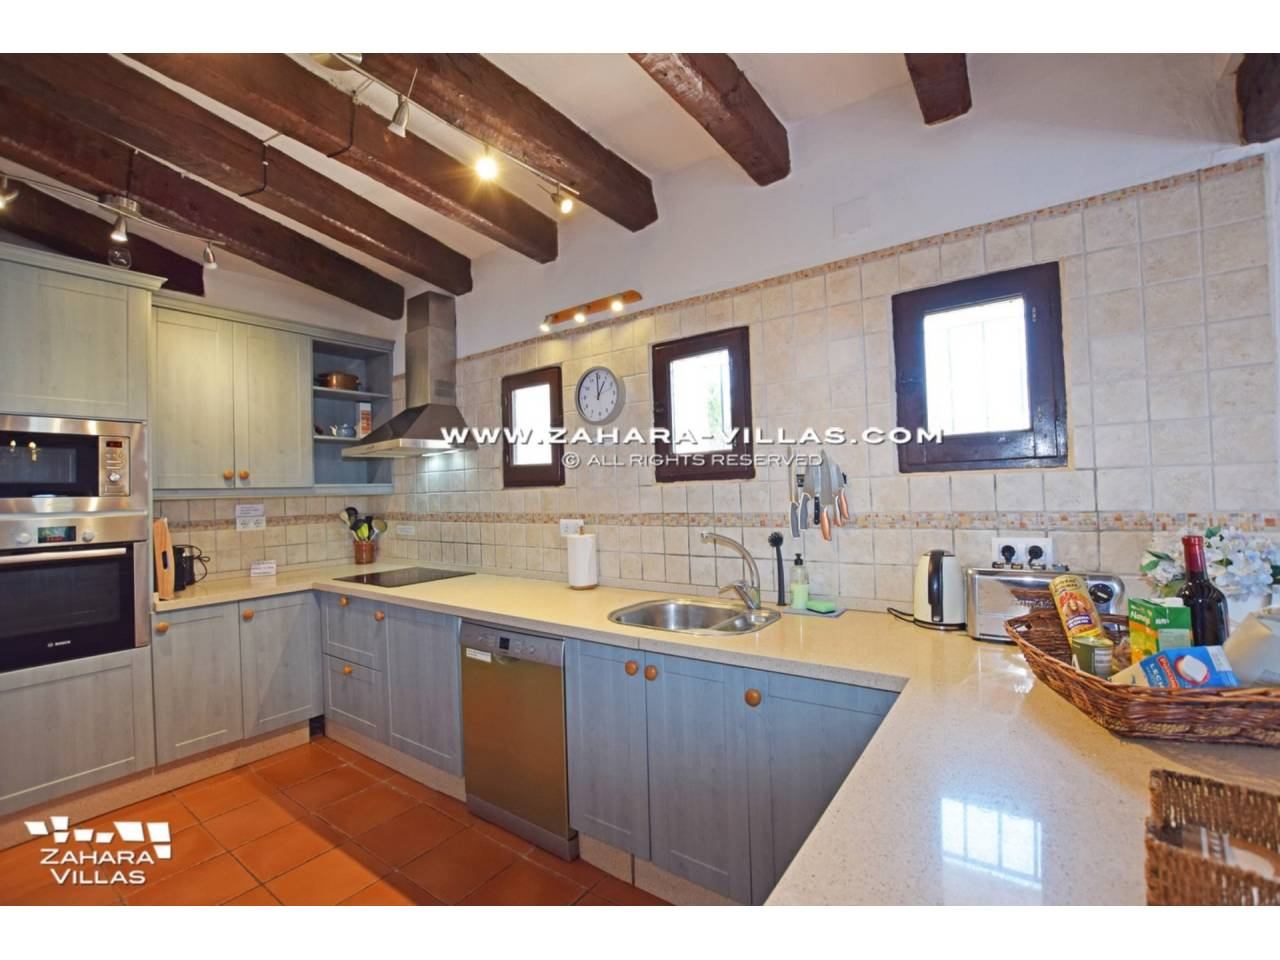 Imagen 28 de Wonderful Villa for sale in Atlanterra-Zahara de los Atunes